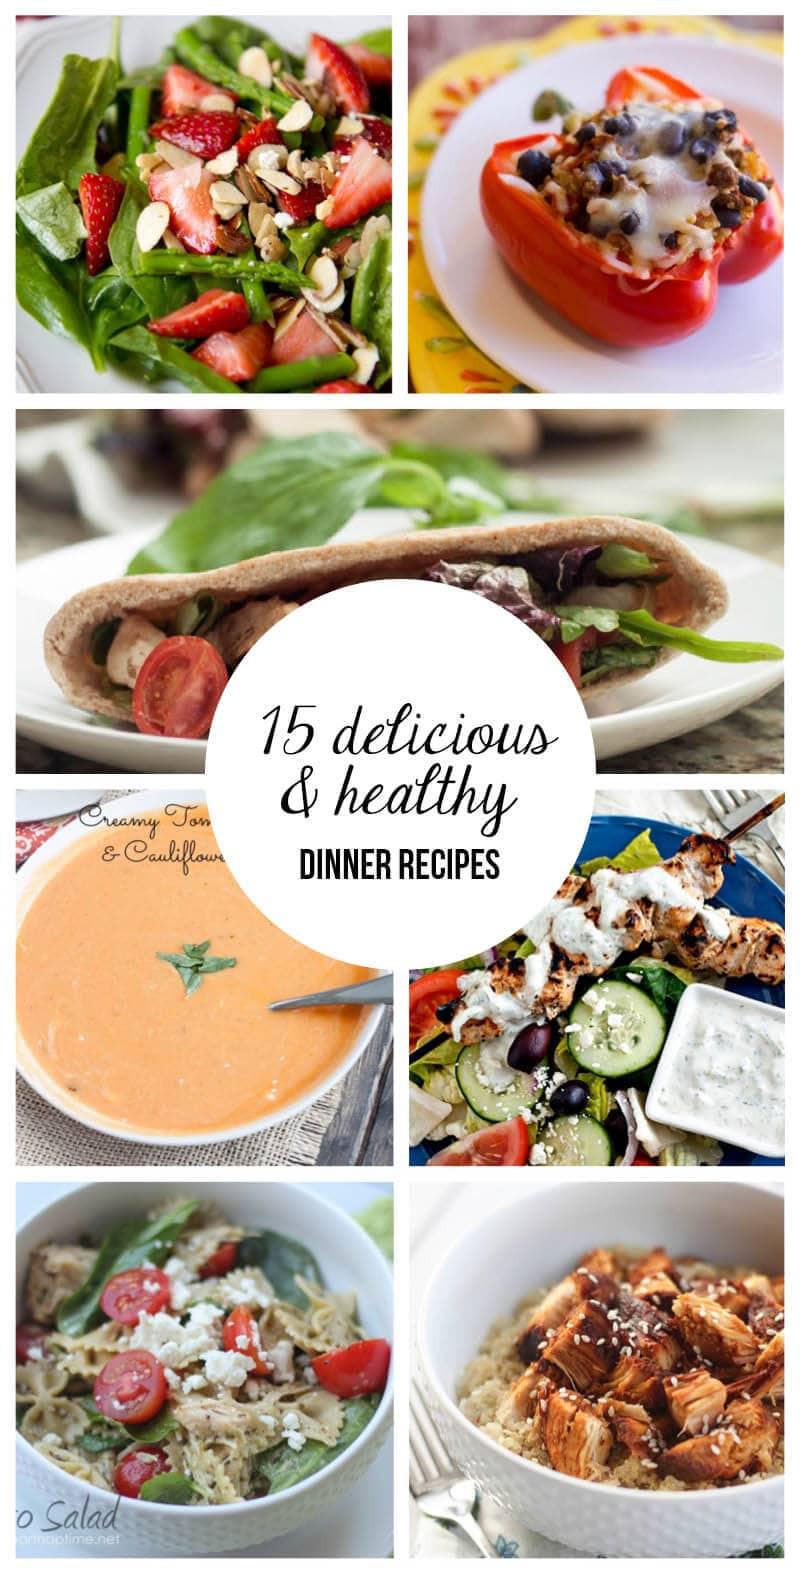 Healthy Tasty Dinner Recipes  DIY Body Wrap Lose up to 1 inch over night I Heart